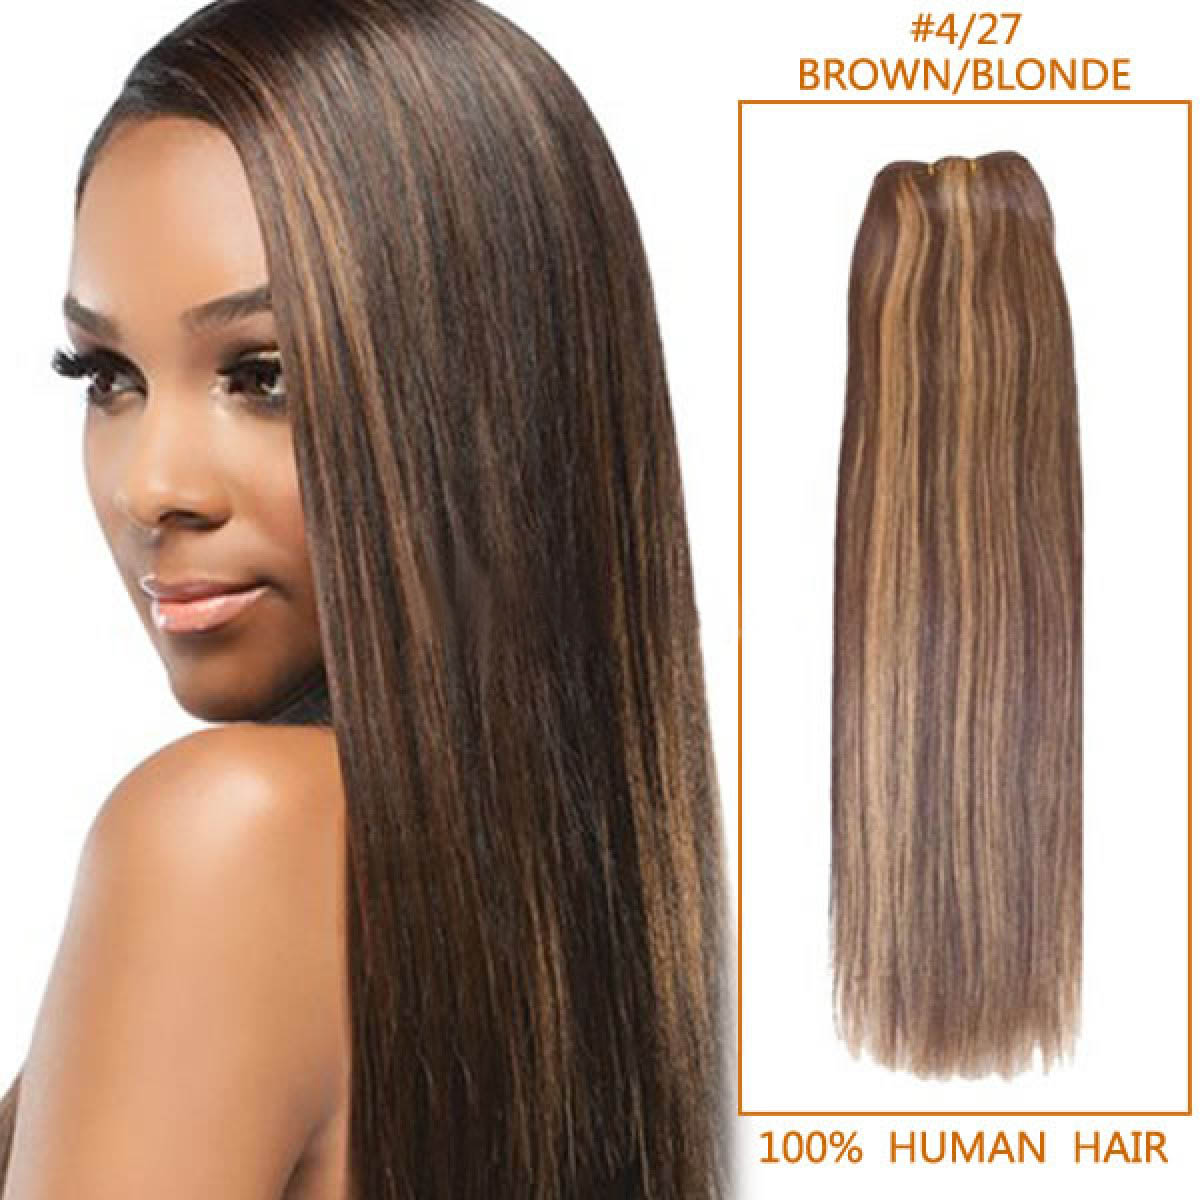 30 Inch 427 Brownblonde Straight Indian Remy Hair Wefts